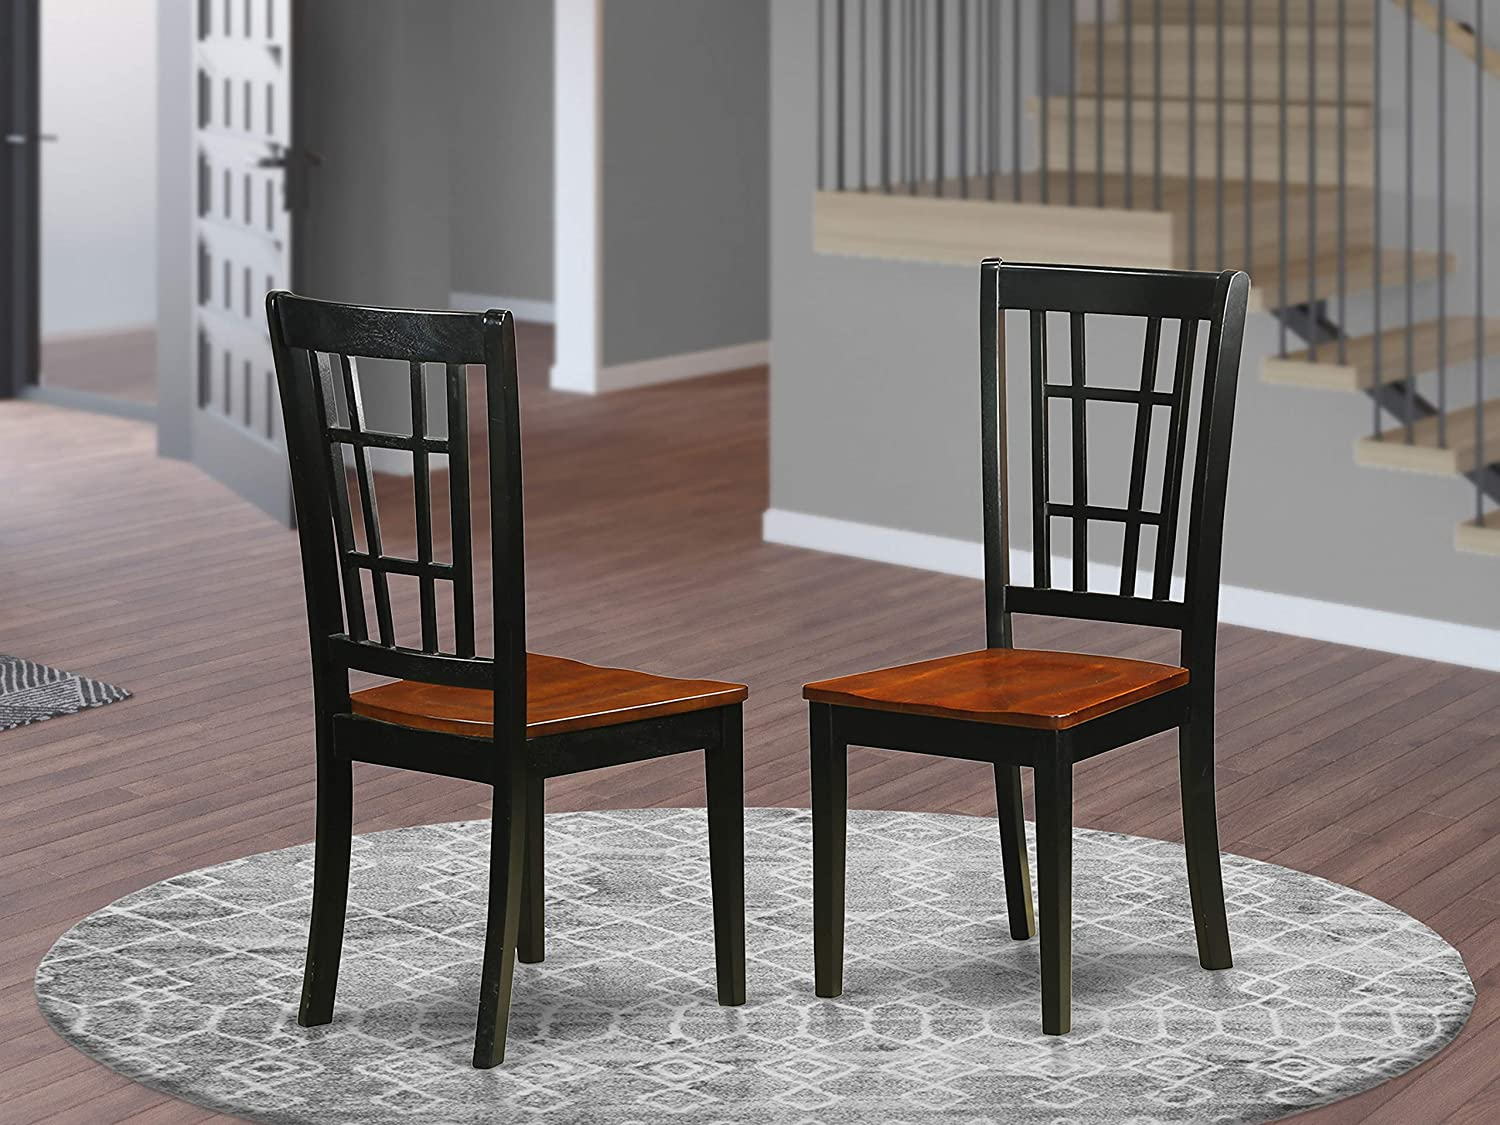 Nicoli Dining Chair with Wood Seat in Black Cherry finish